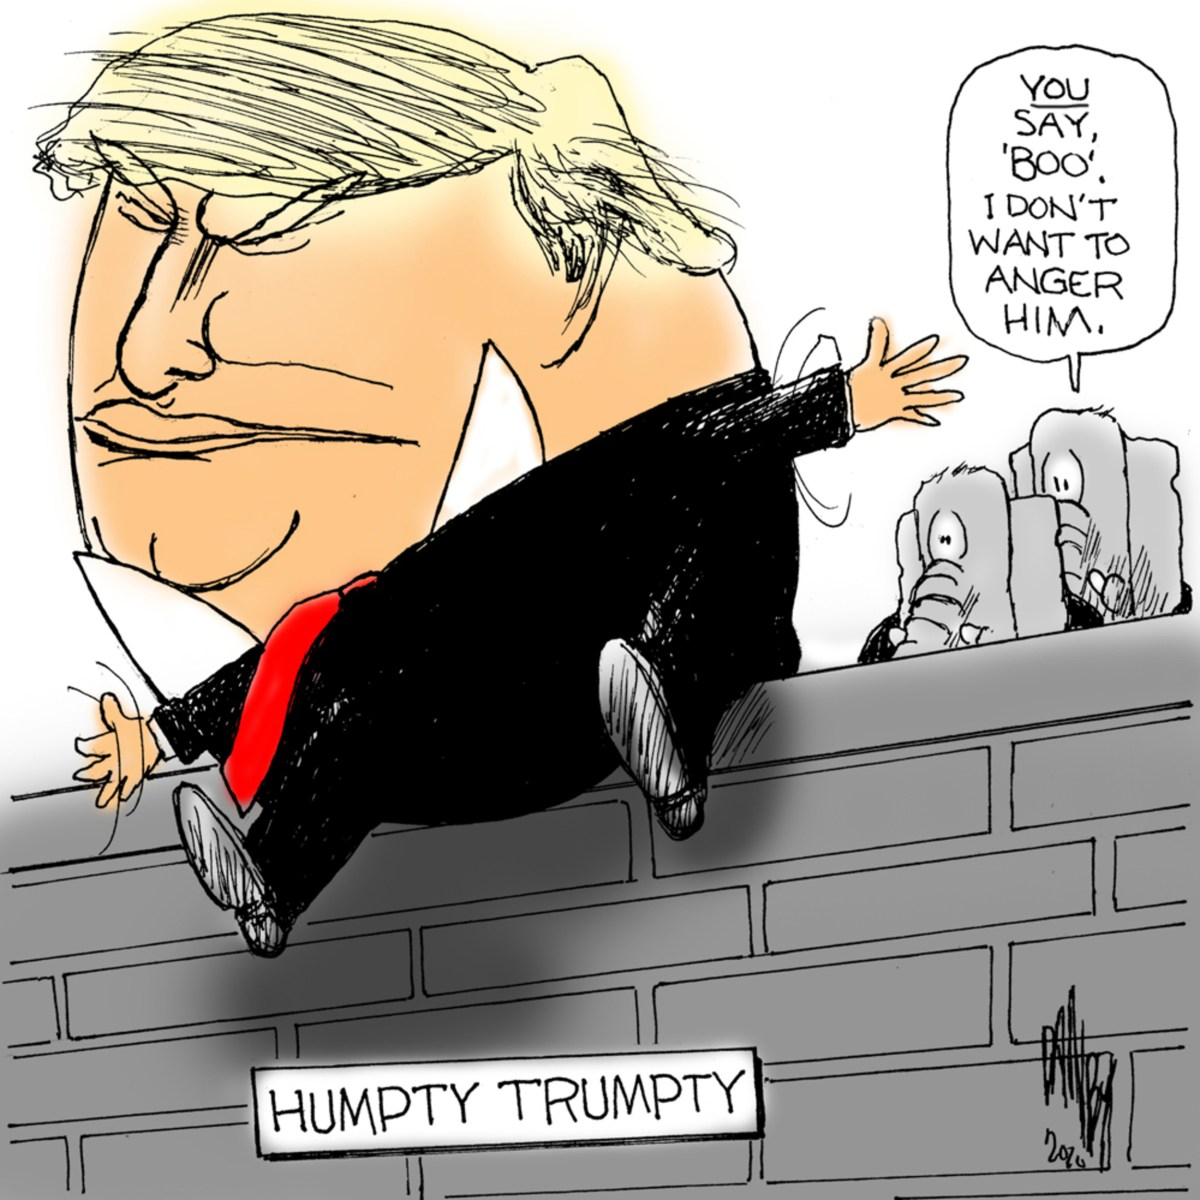 Image of Donald Trump as Humpty-Dumpty sitting on a wall labeled